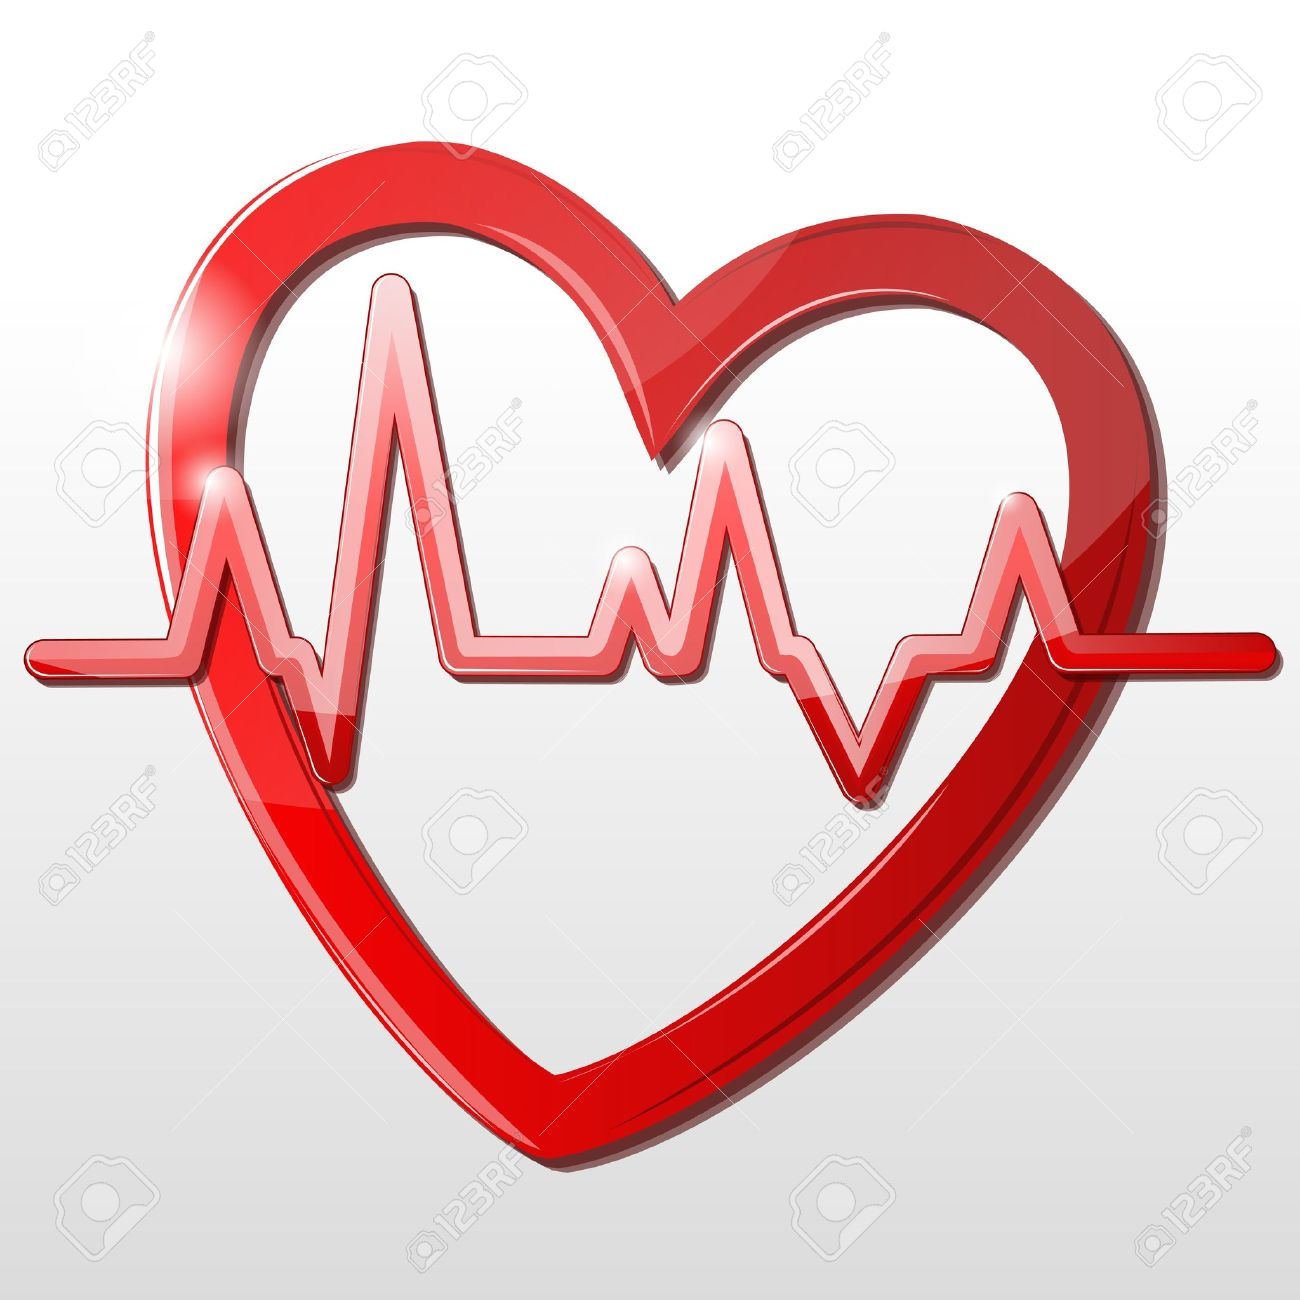 illustration of heart with cardiograph on white background - 9438587